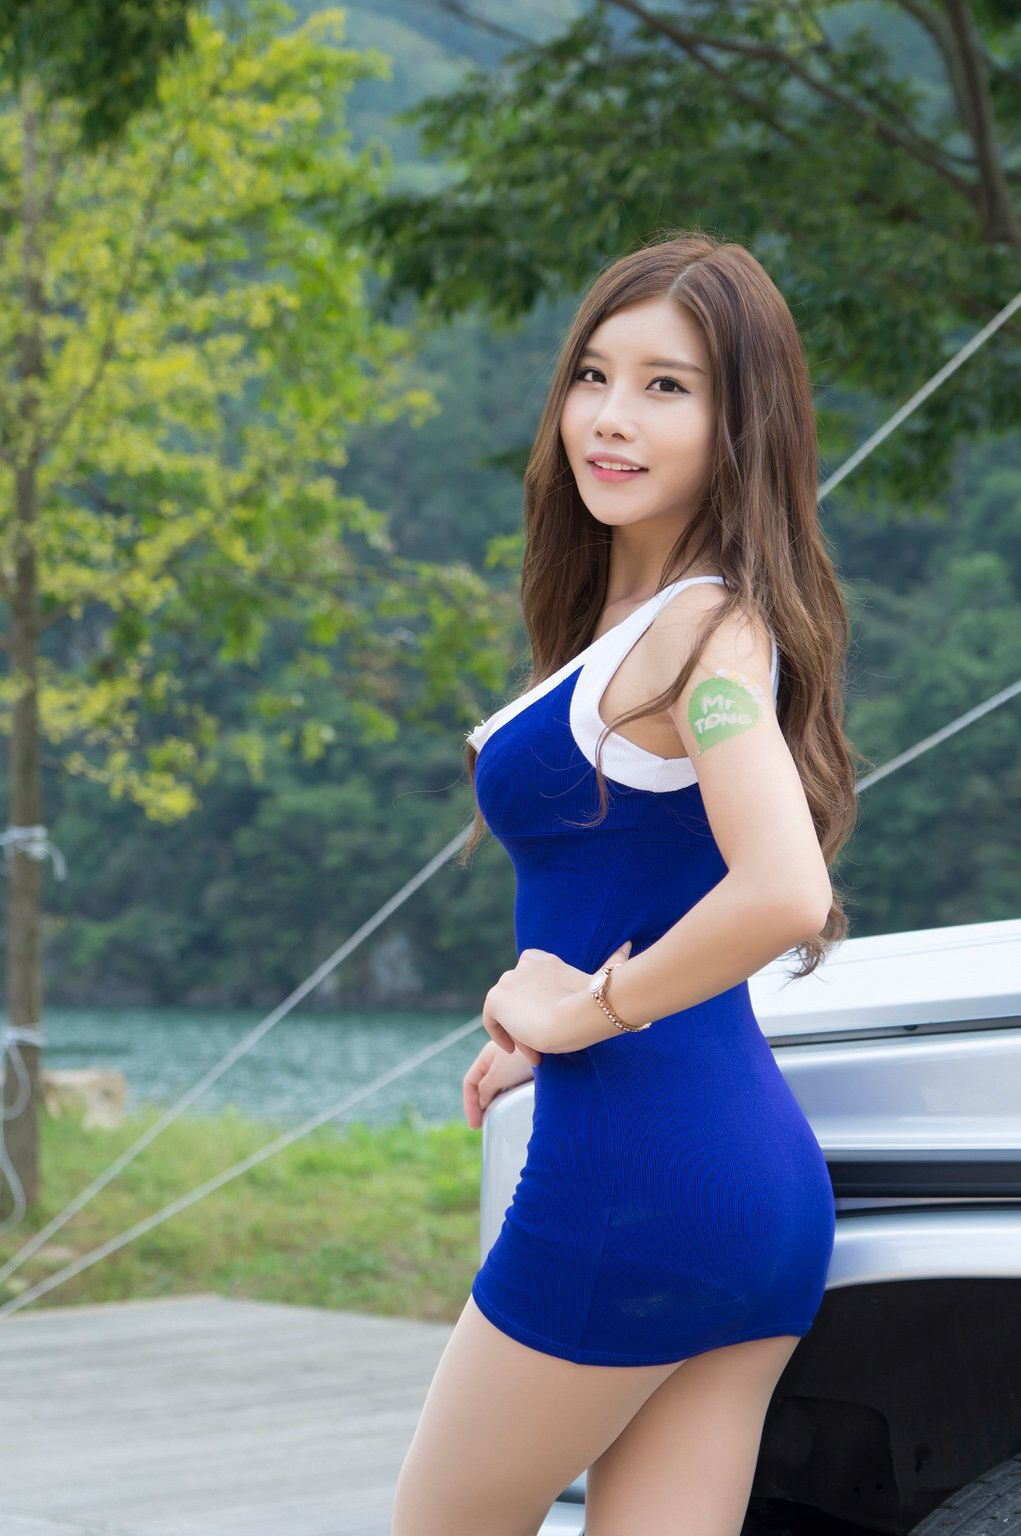 Index of hot asian